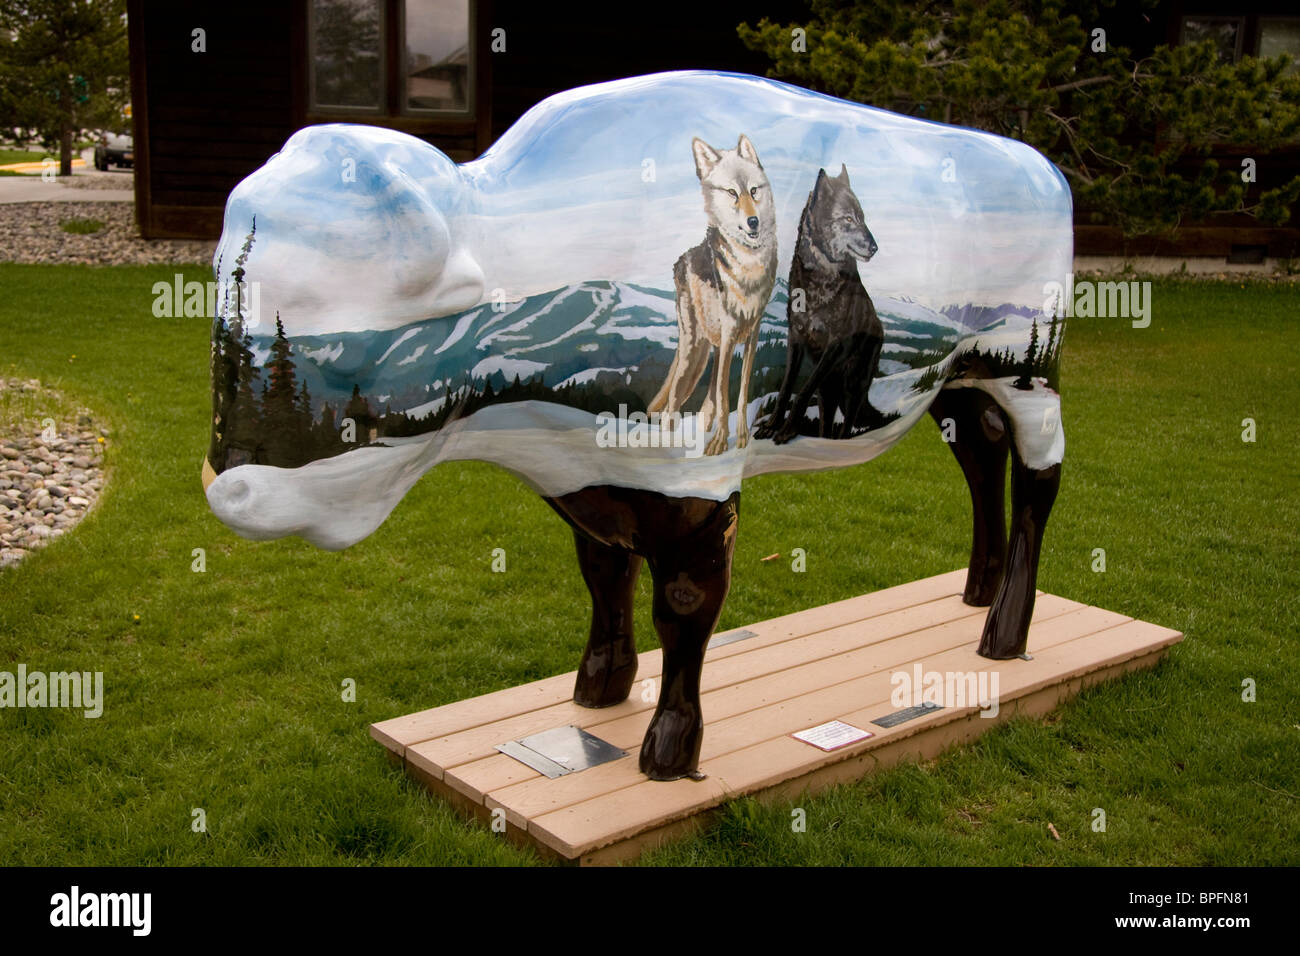 One of a series of painted buffalo as part of an art event at West Yellowstone, Montana, USA - Stock Image